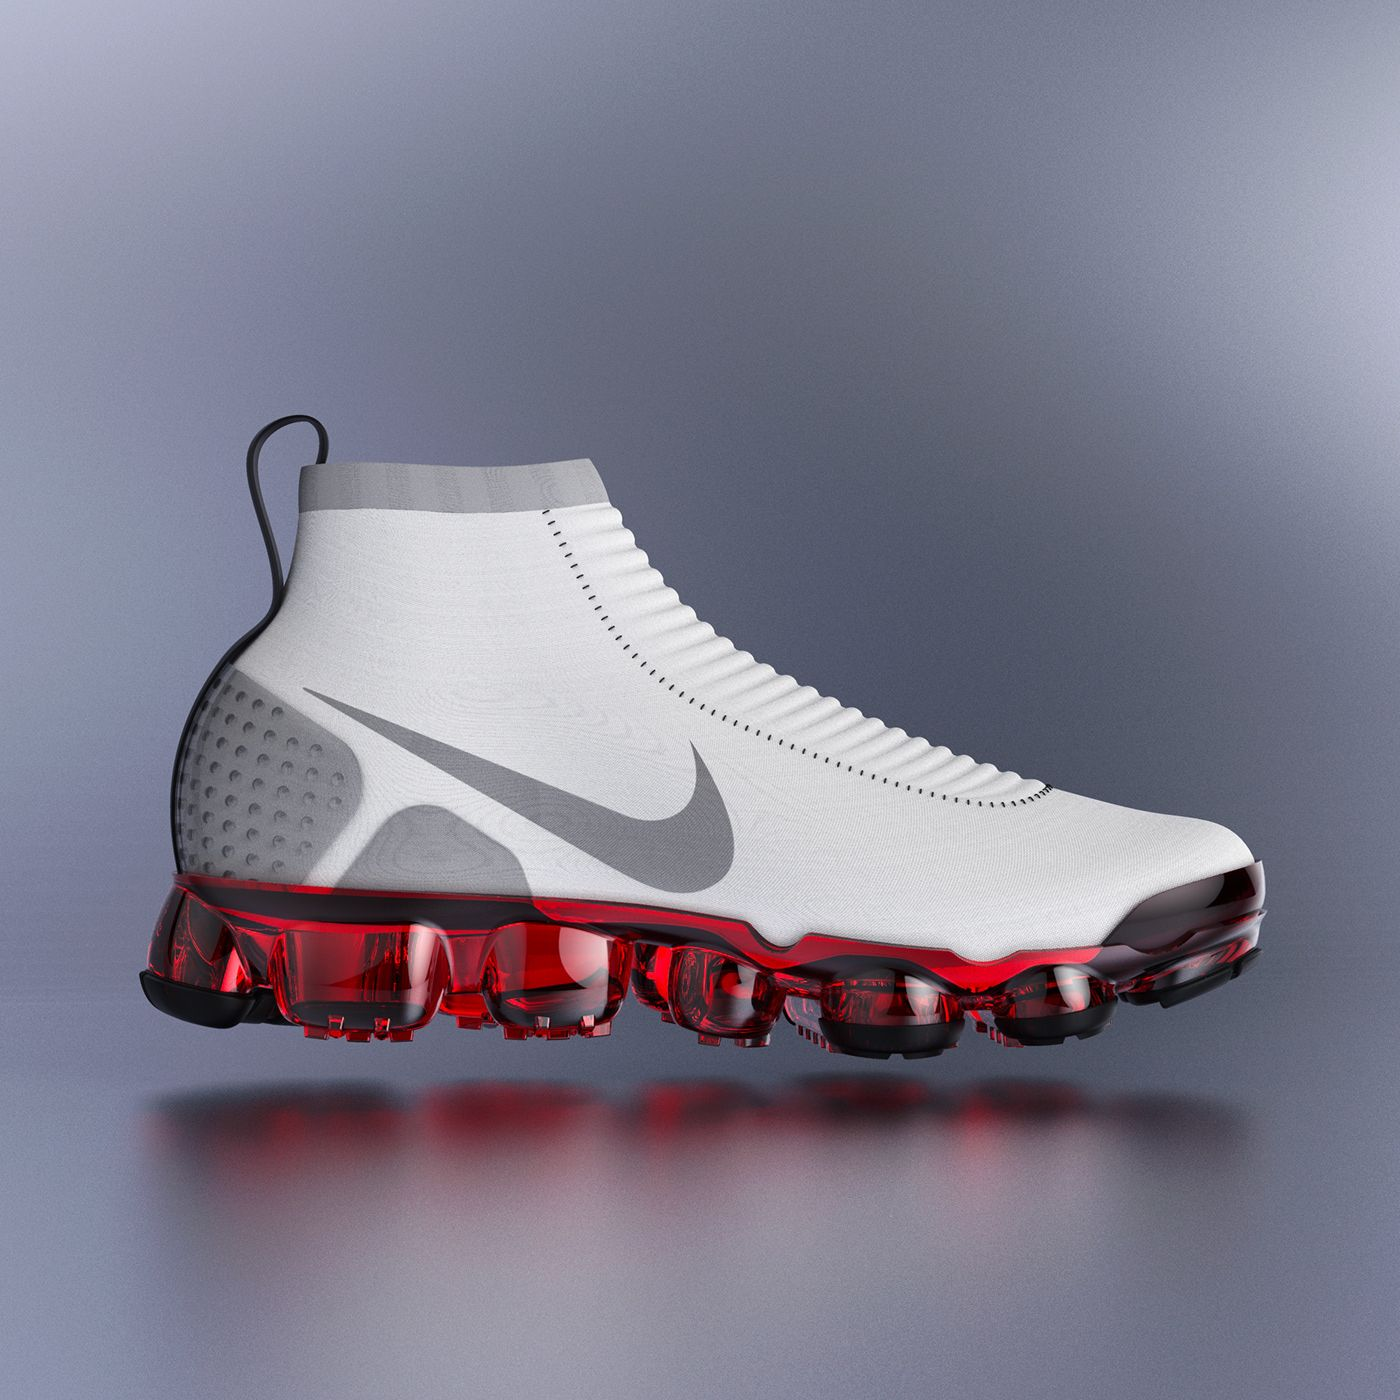 4254a05d8d88 Nike Vapor-Mars on Behance. Find this Pin and more on Nike AirMax ...